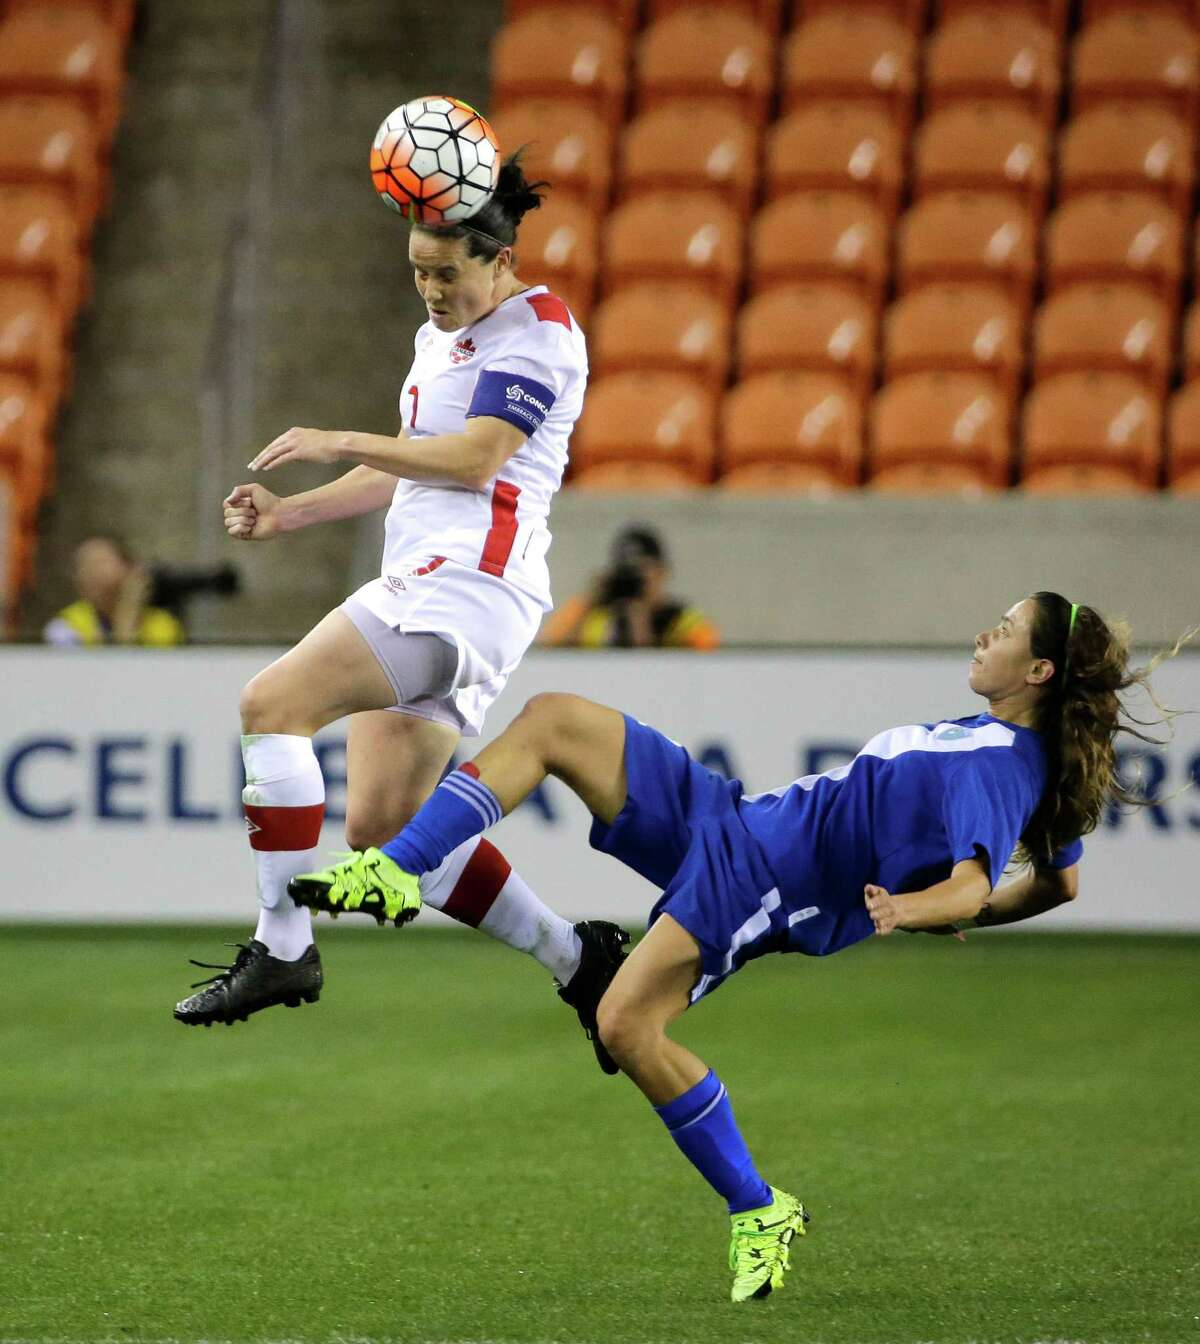 Rhian Wilkinson has no trouble getting off a header over Guatemala's Daniela Andrade during Canada's 10-0 victory Tuesday night at BBVA Compass Stadium that continued the dominance of the Canadians and Americans in the Olympic qualifying tournament.